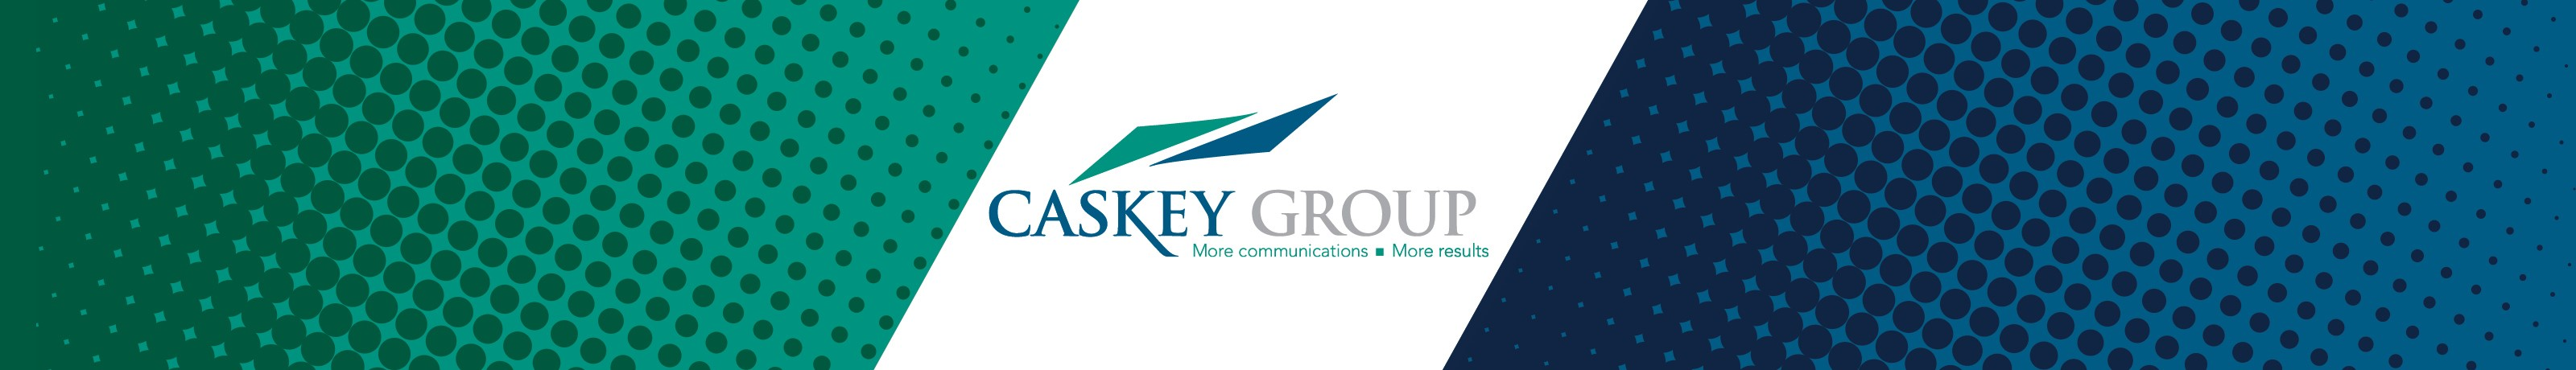 Caskey Group File Transfer